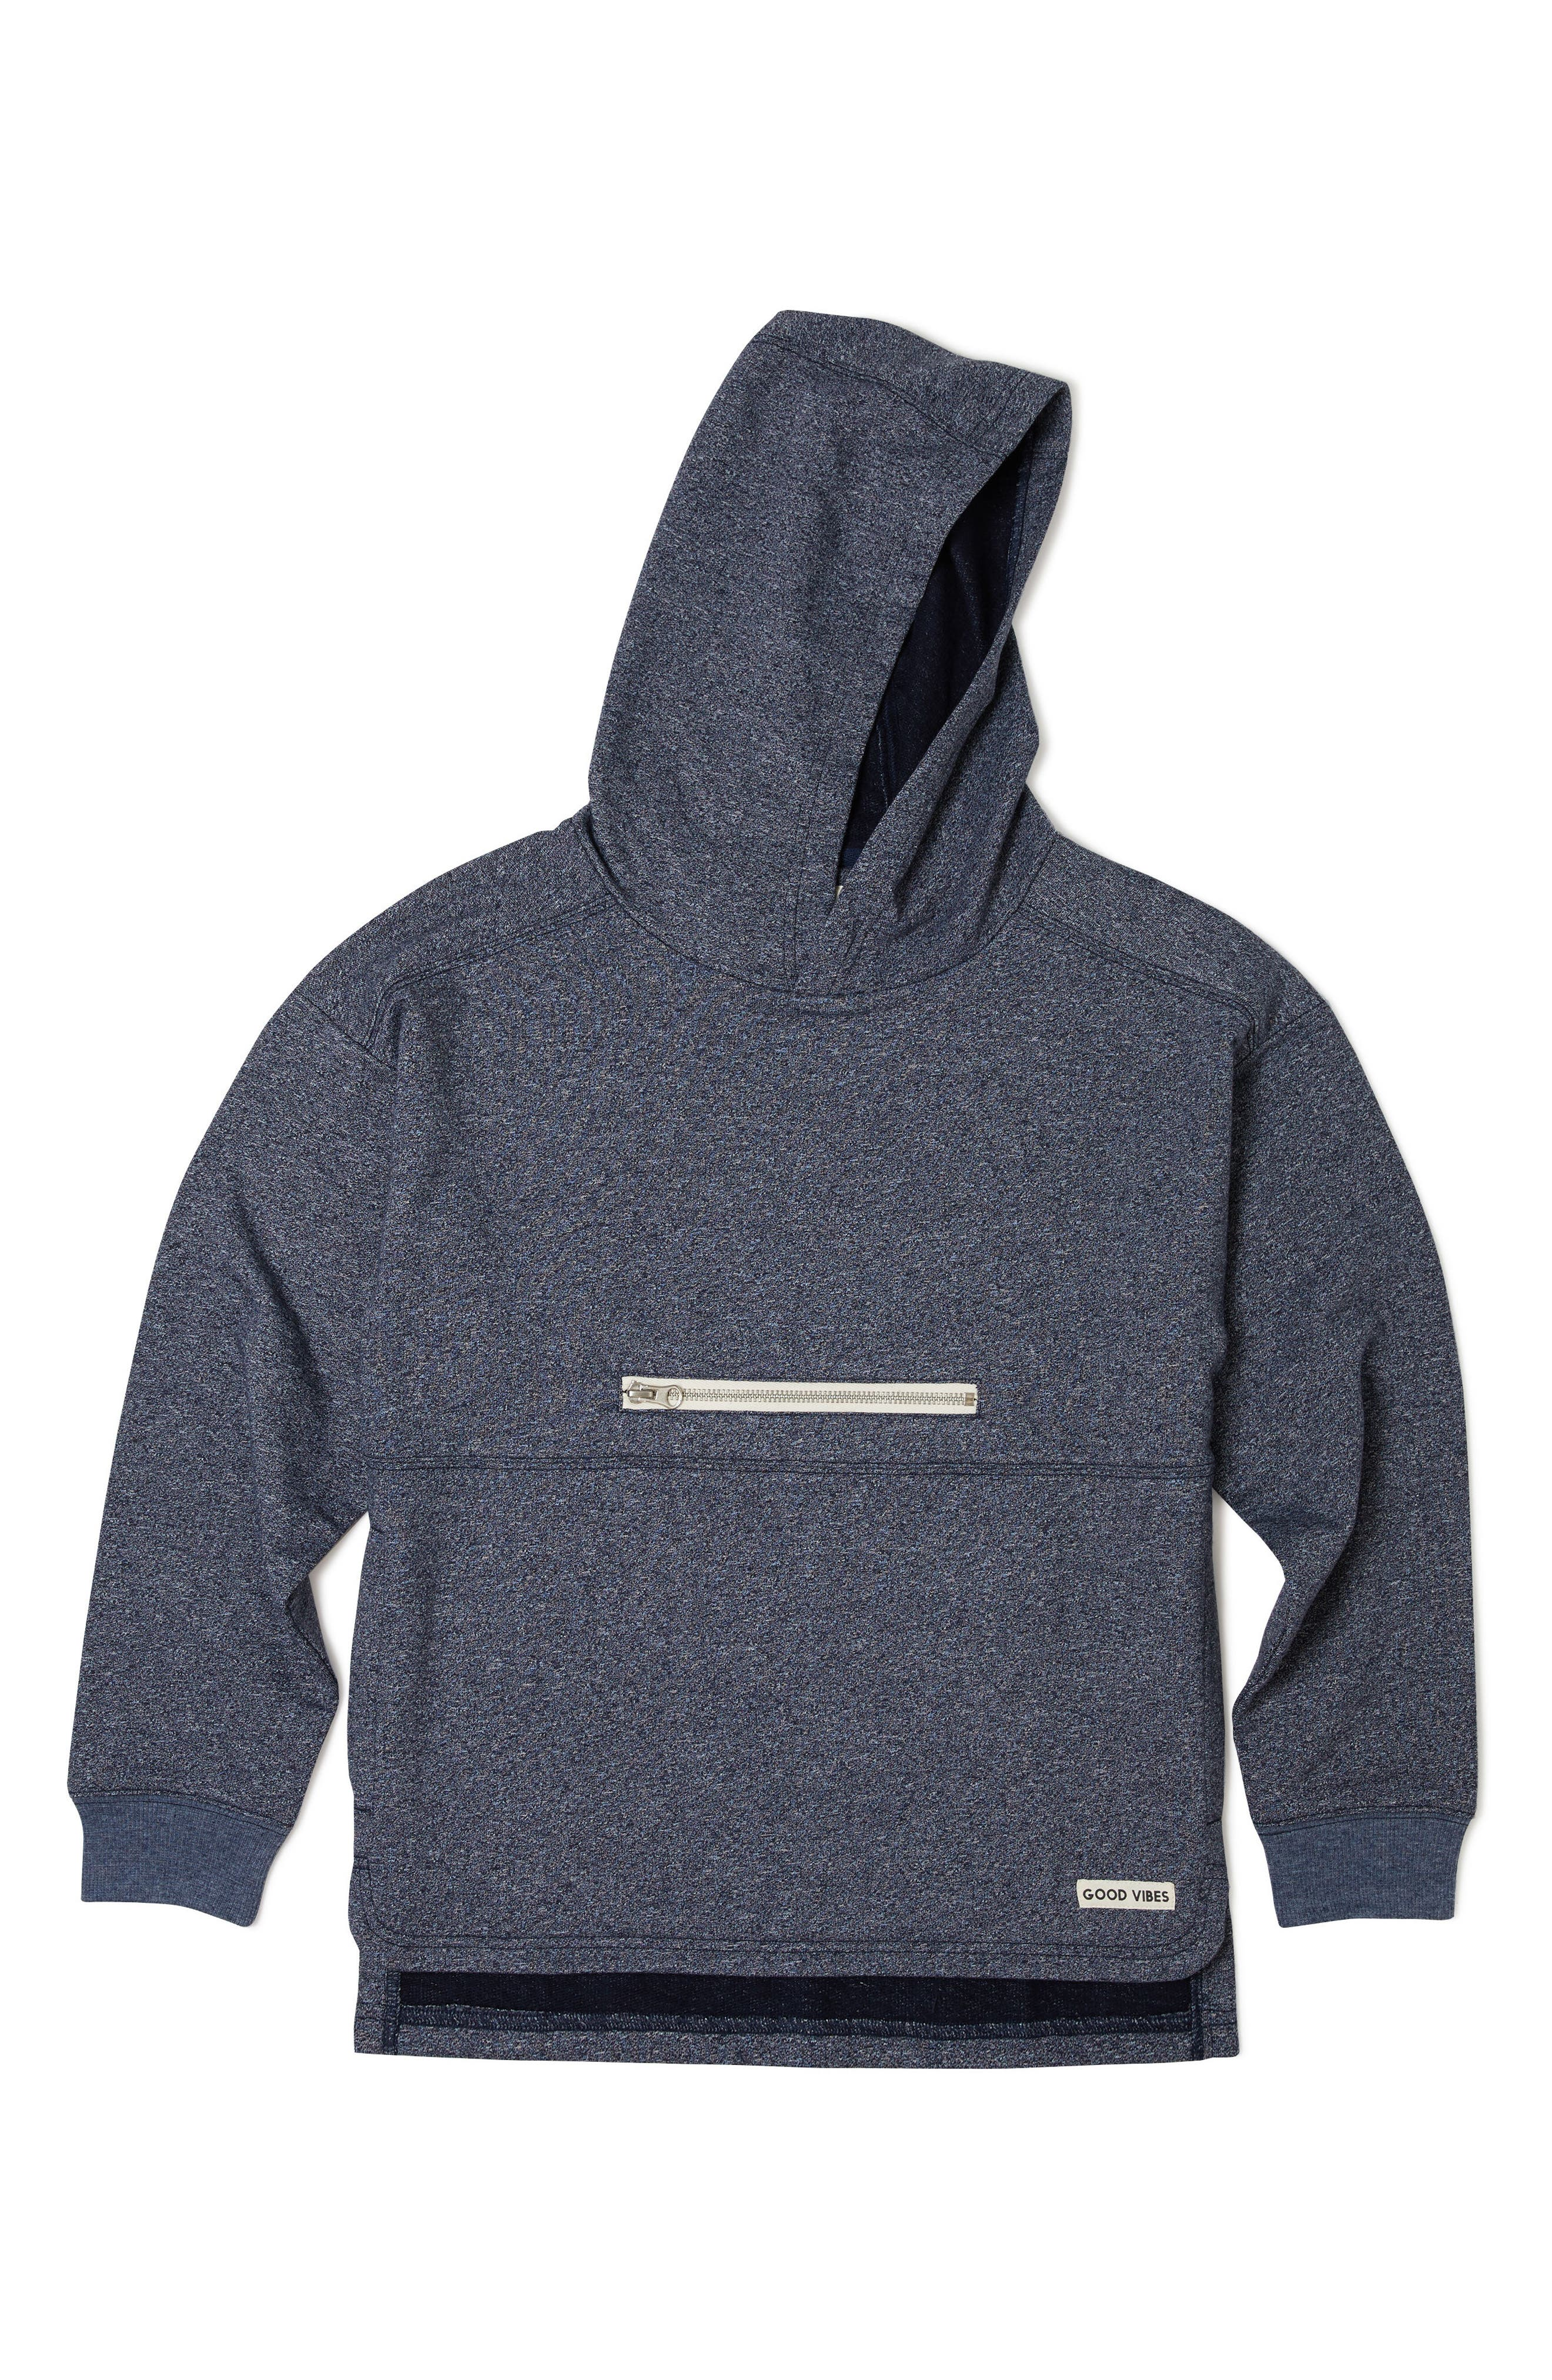 Cruise Hoodie,                             Main thumbnail 1, color,                             Heather Navy